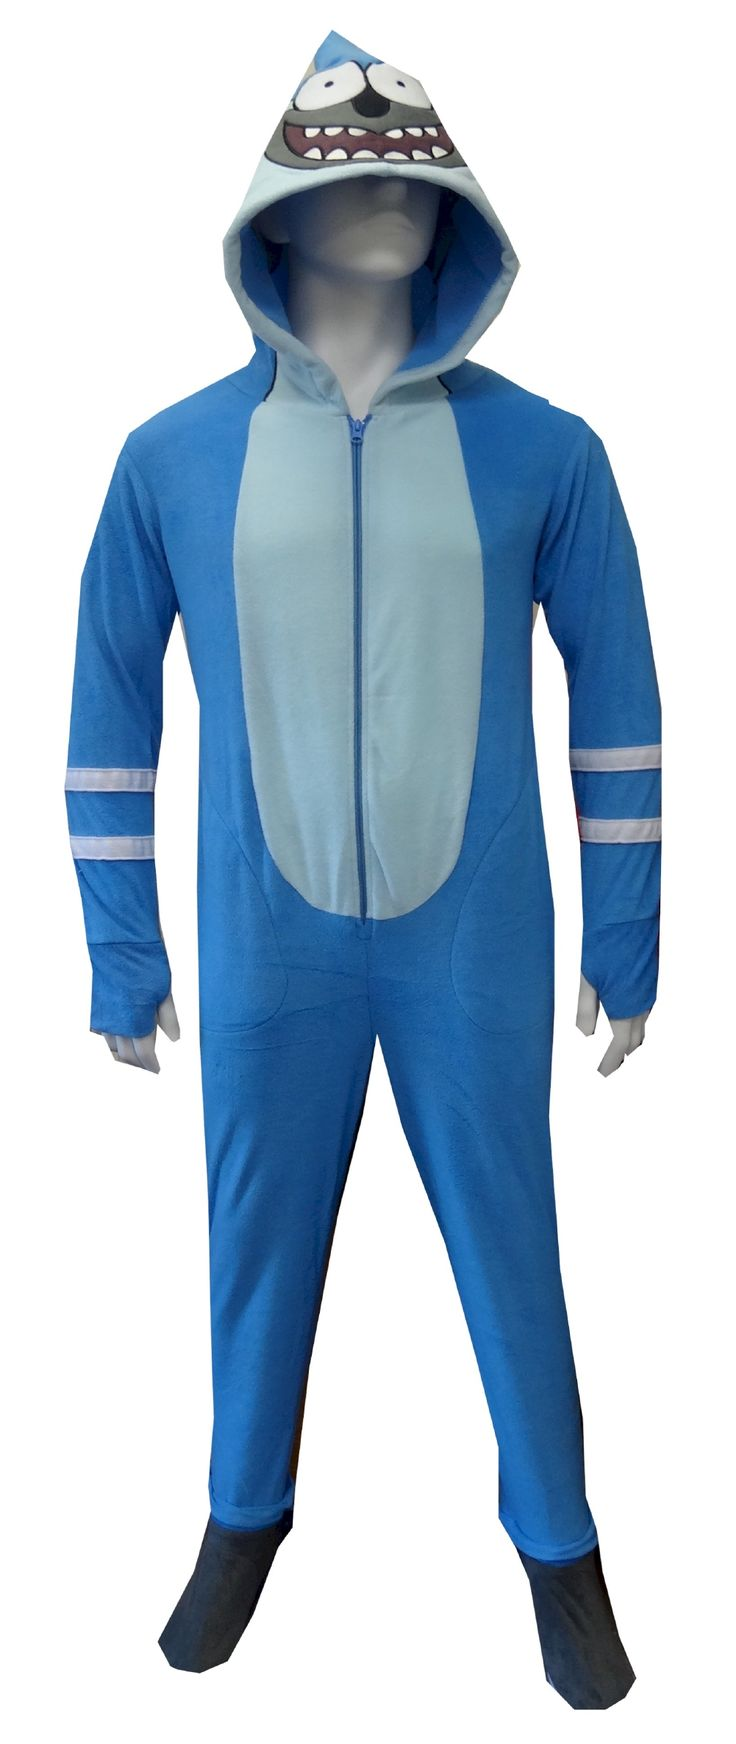 Regular Show Mordecai Unisex Hooded Footie Pajama It's time for some stupid fun with Mordecai from the Regular Show! These unis...